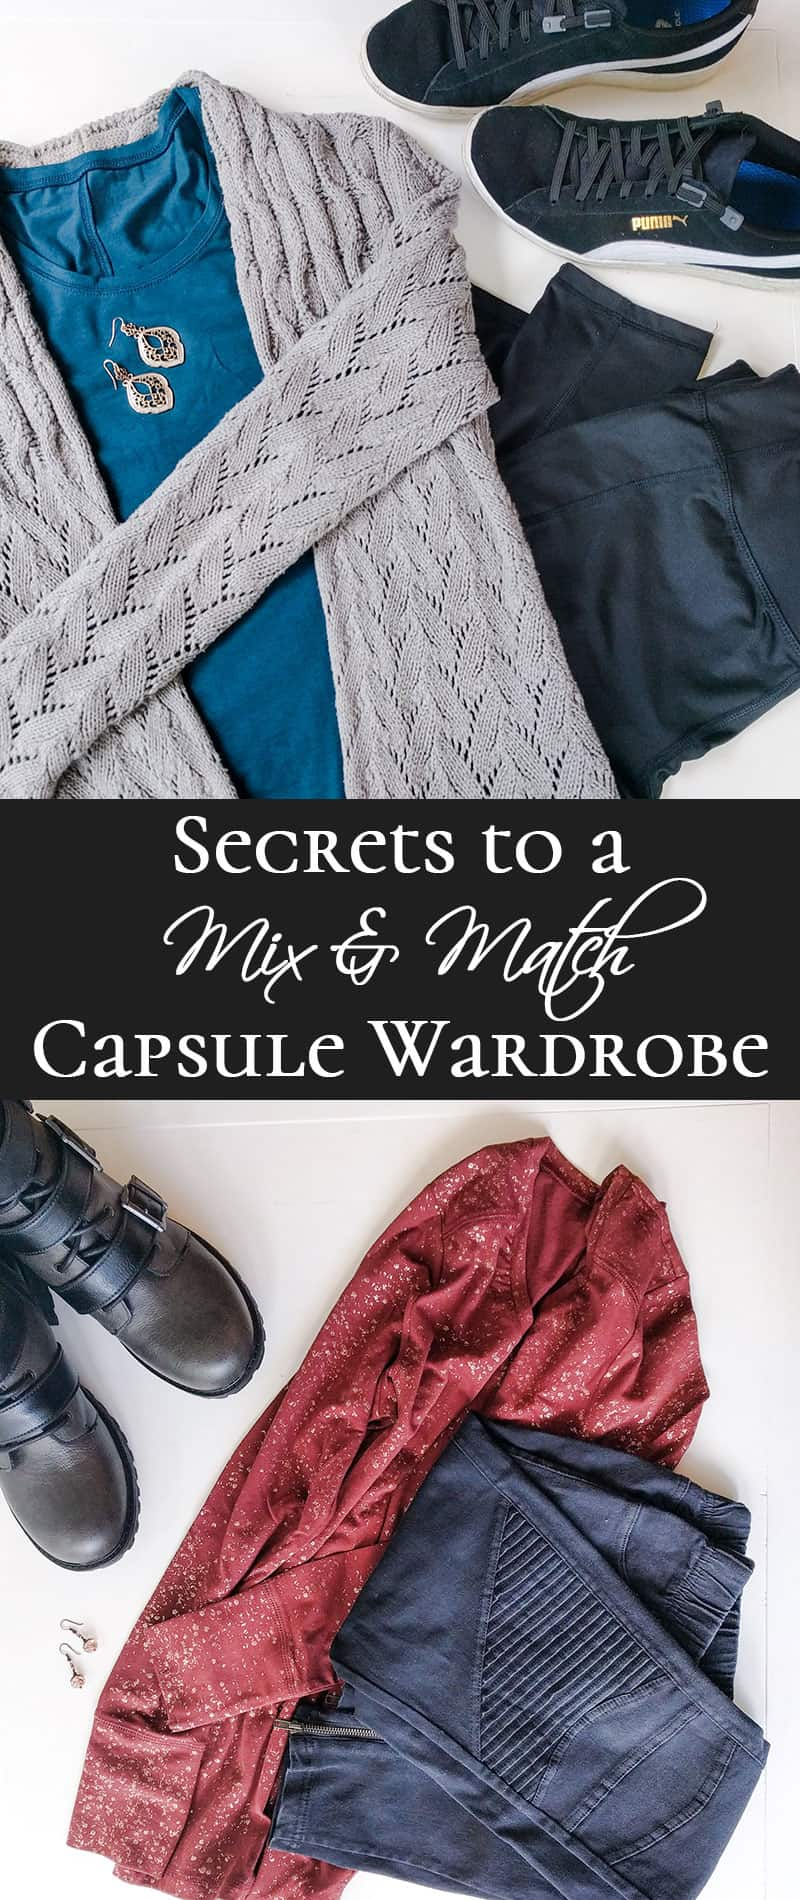 These tips are perfect for a mix and match fall or winter wardrobe! Fashion for surviving the cold and the snow :) Love the minimalist style - she really focuses on the basics and staples. The final survival tip about shoes is genius!